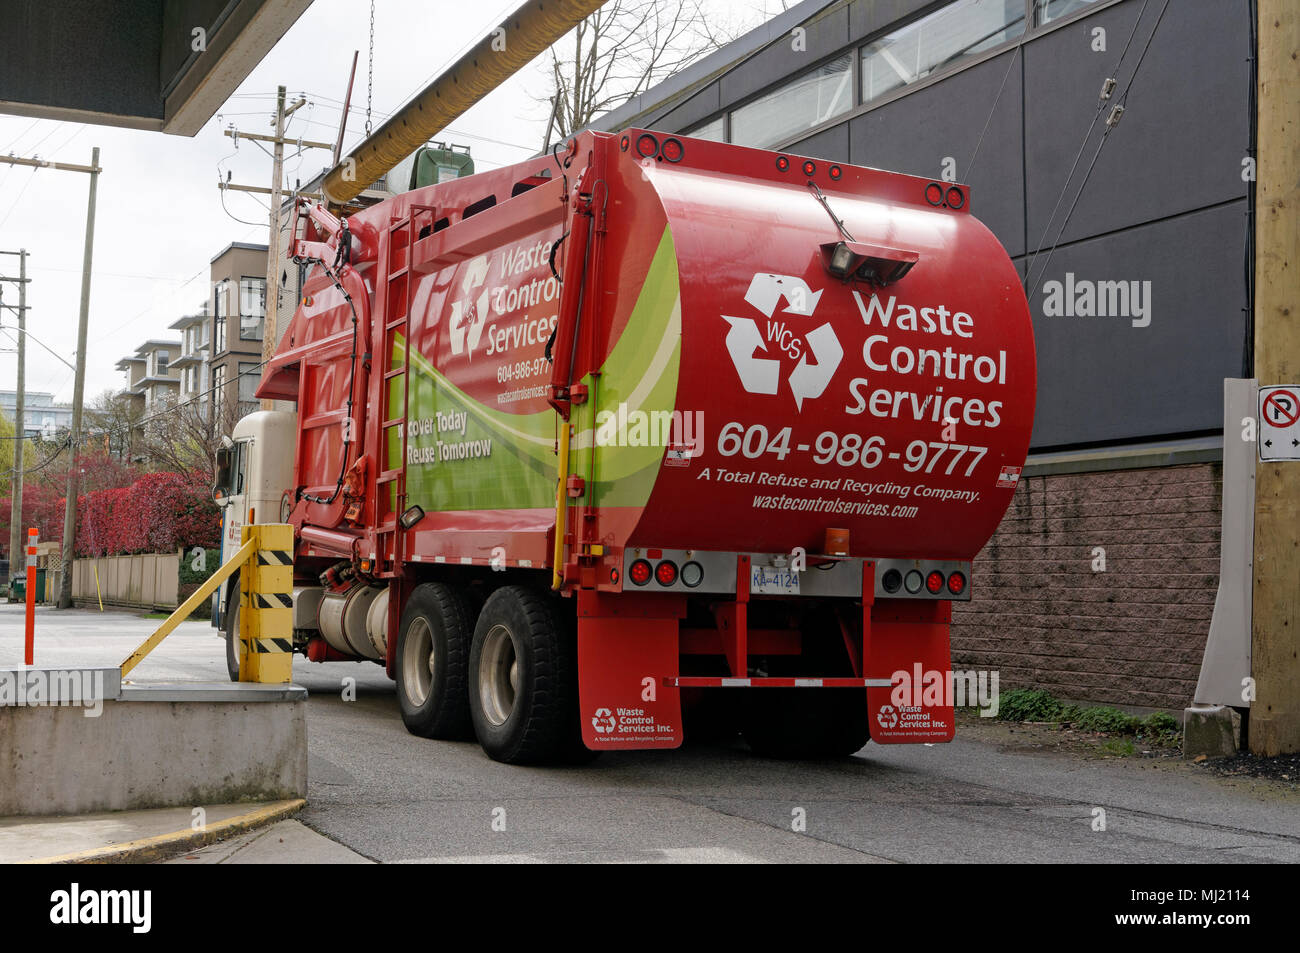 waste-control-recycling-services-truck-in-an-alley-vancouver-bc-canada-MJ2114.jpg